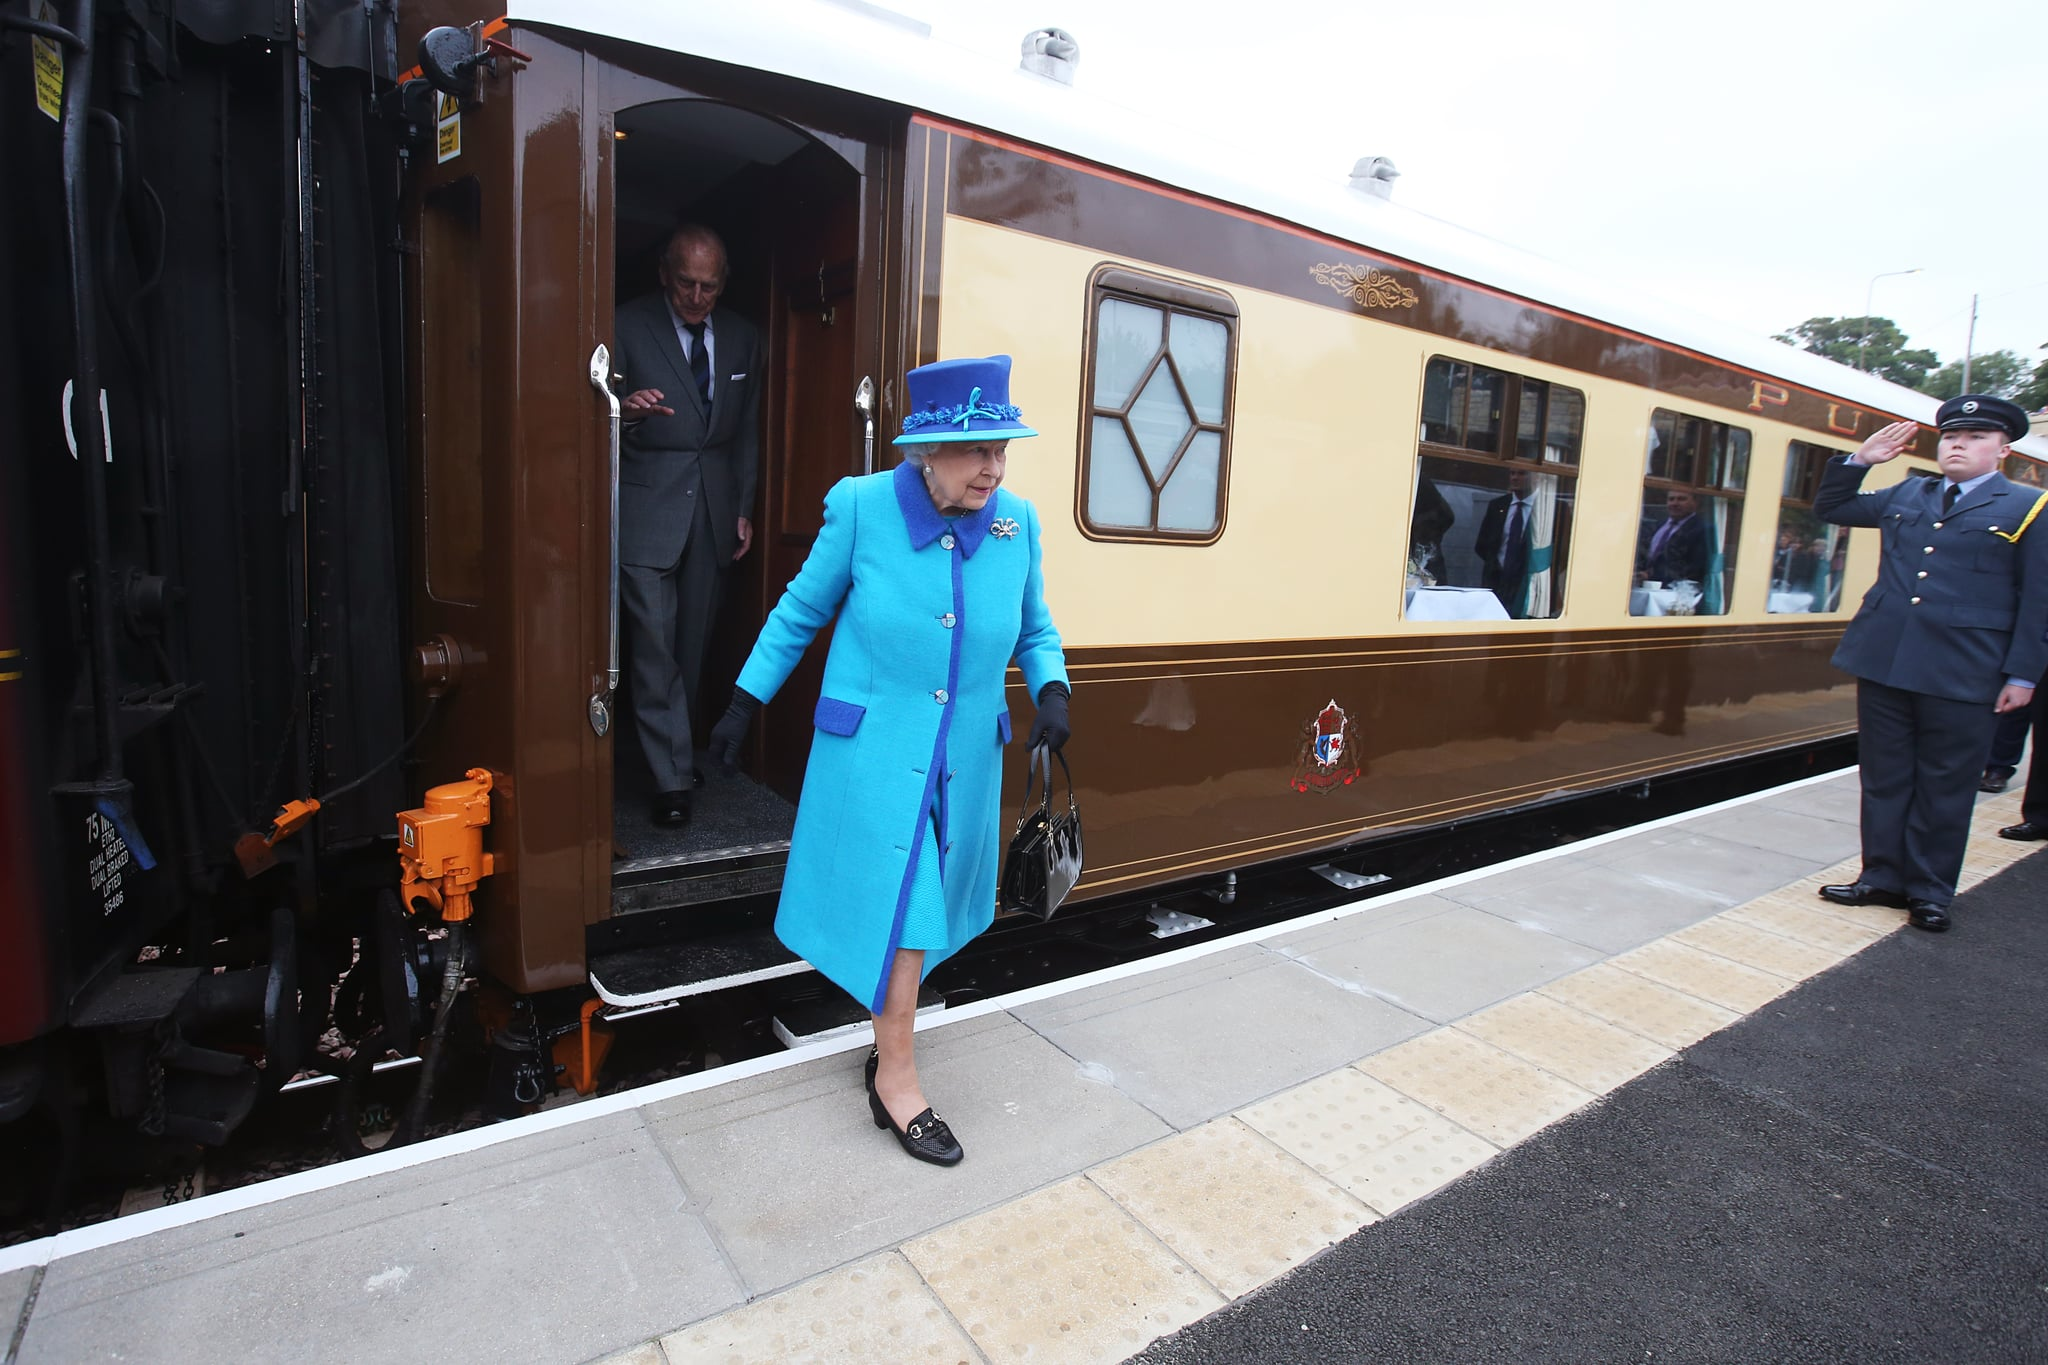 NEWTONGRANGE, SCOTLAND - SEPTEMBER 09:  Queen Elizabeth II arrives to greet well-wishers before she unveils a commemorative plaque at Newtongrange railway station on board the steam locomotive 'Union of South Africa' on the day she becomes Britain's longest reigning monarch on September 09, 2015 in Newtongrange, Scotland. Today, Her Majesty Queen Elizabeth II becomes the longest reigning monarch in British history overtaking her great-great grandmother Queen Victoria's record by one day. The Queen has reigned for a total of 63 years and 217 days. Accompanied by her husband and Scotland's First Minister Nicola Sturgeon she will officially open the new Scottish Border's Railway which runs from the capital to Tweedbank.  (Photo by Andrew Milligan - WPA Pool/Getty Images)